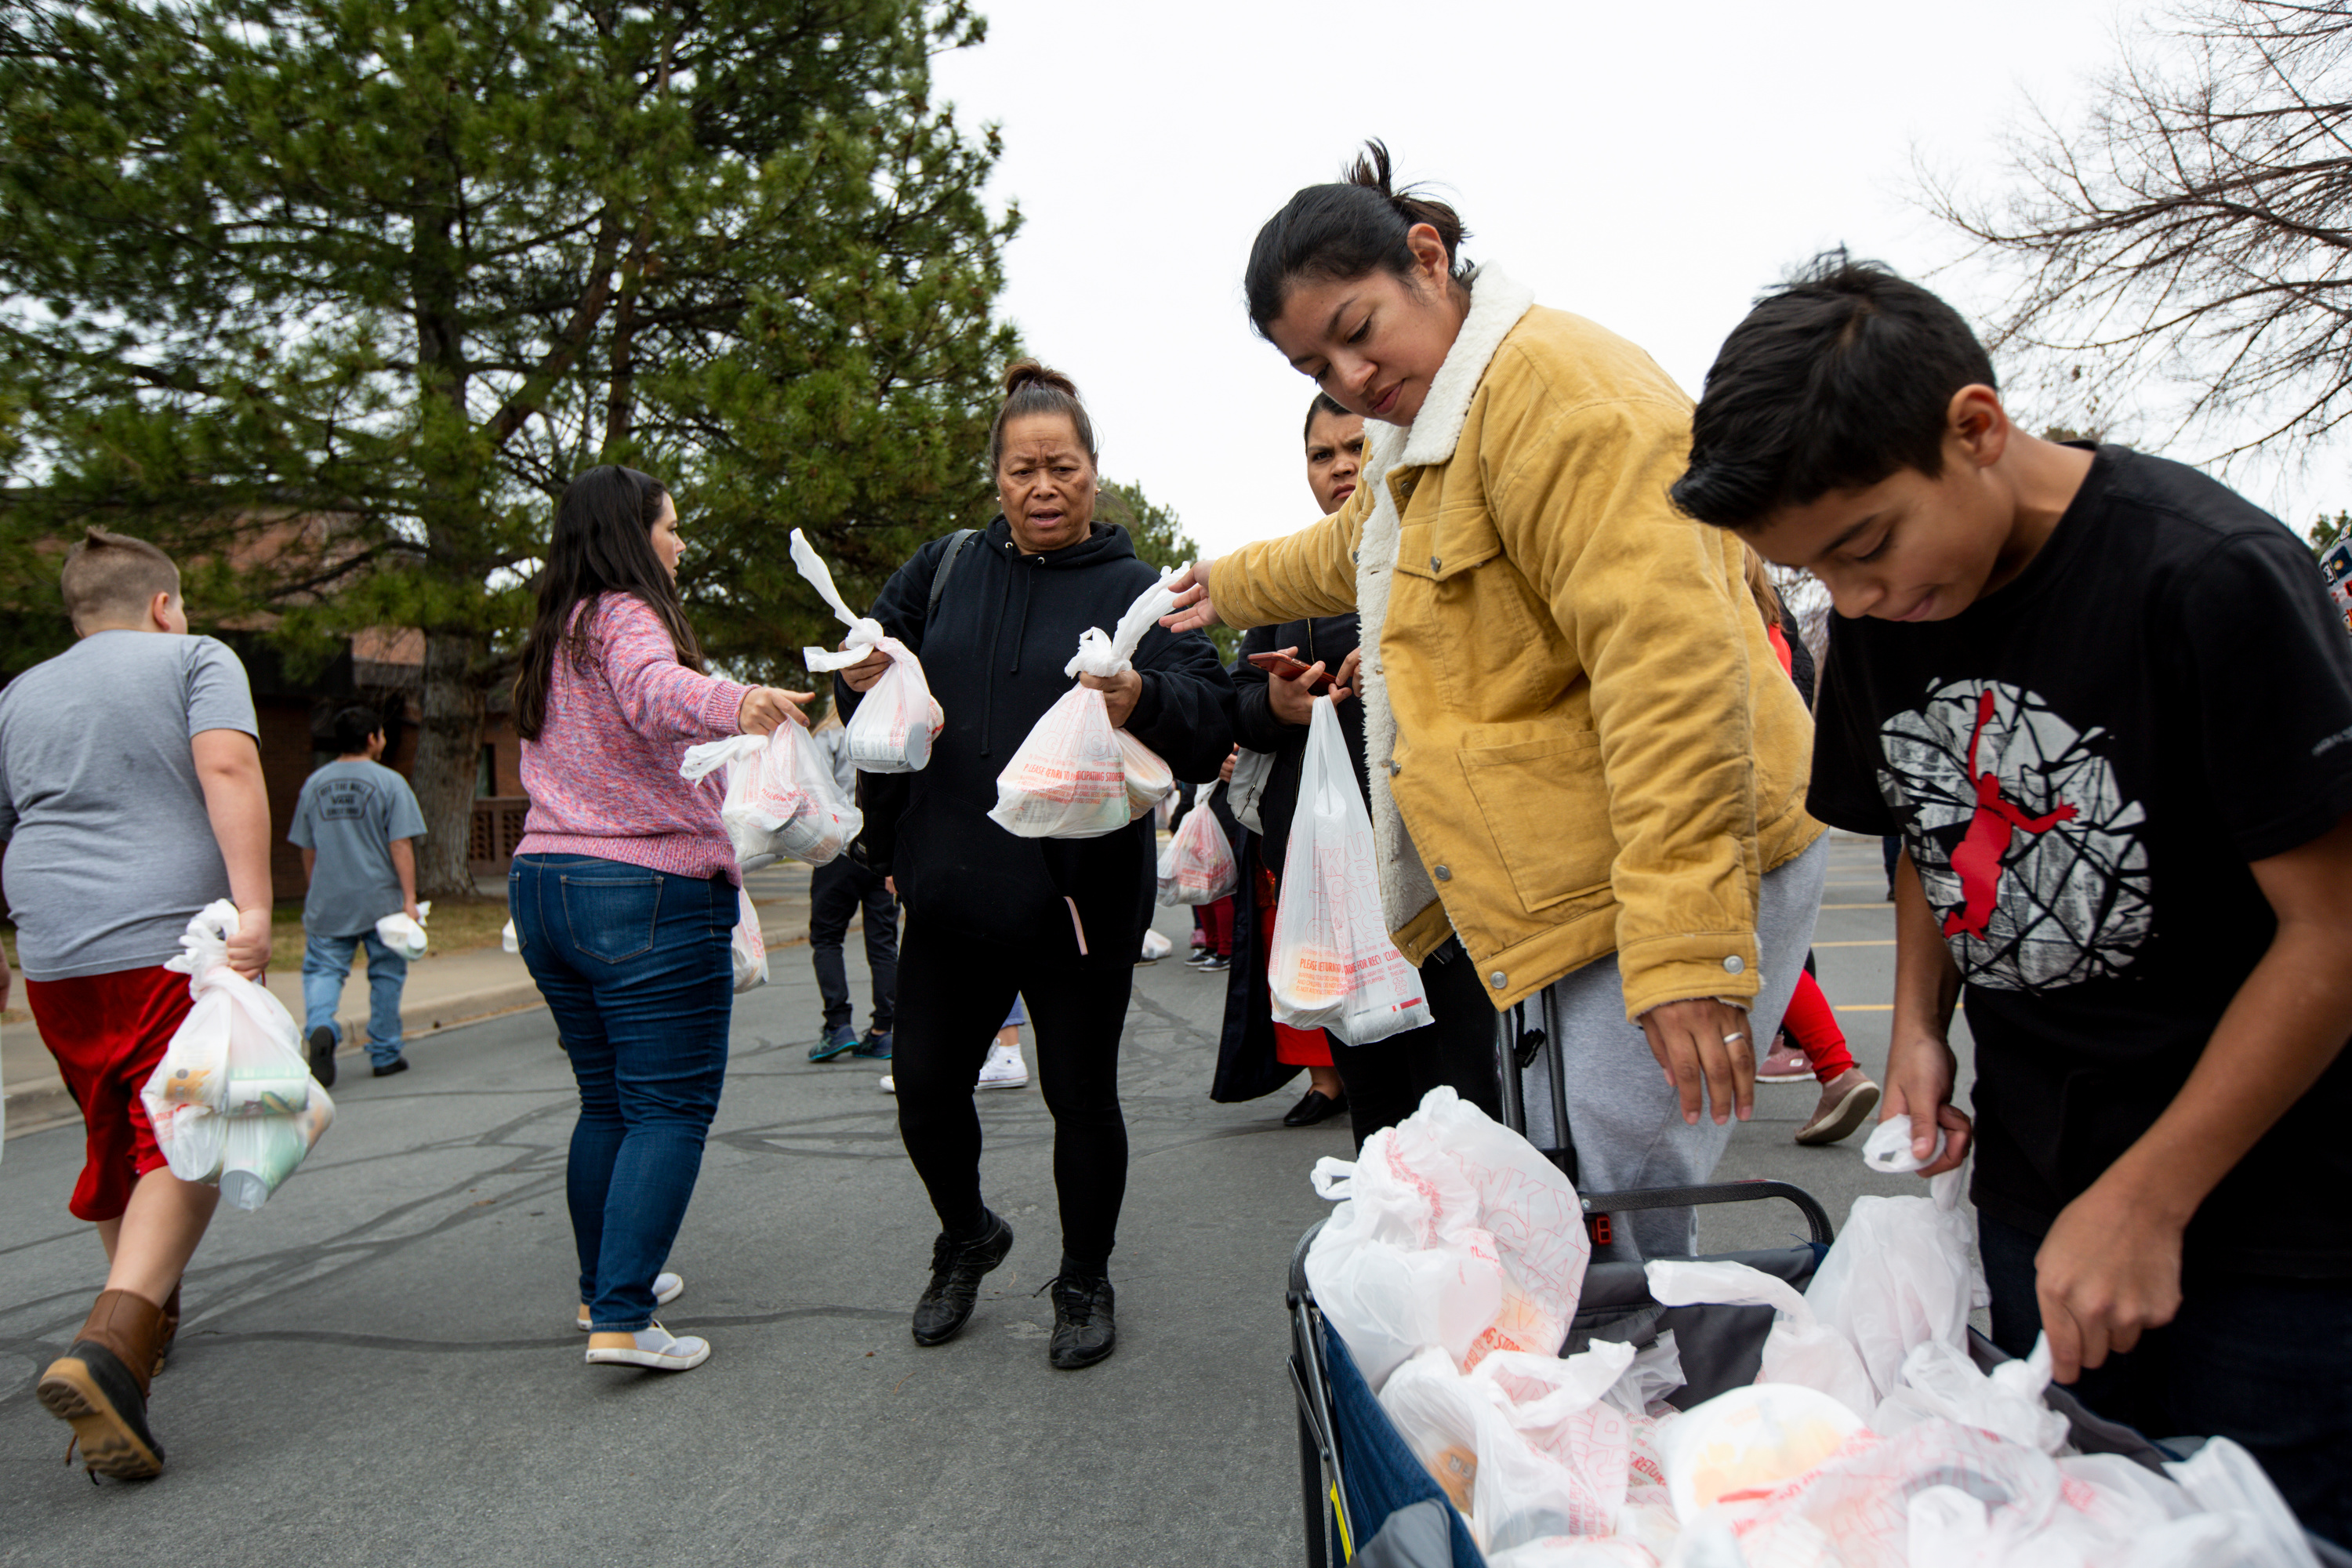 Mele Massey, center, collects the few donations left from the Utah Food Bank at the parking lot of a chapel belonging to The Church of Jesus Christ of Latter-day Saints in Taylorsville on Monday, March 16, 2020. Hundreds of people waited in line to receive the donations.